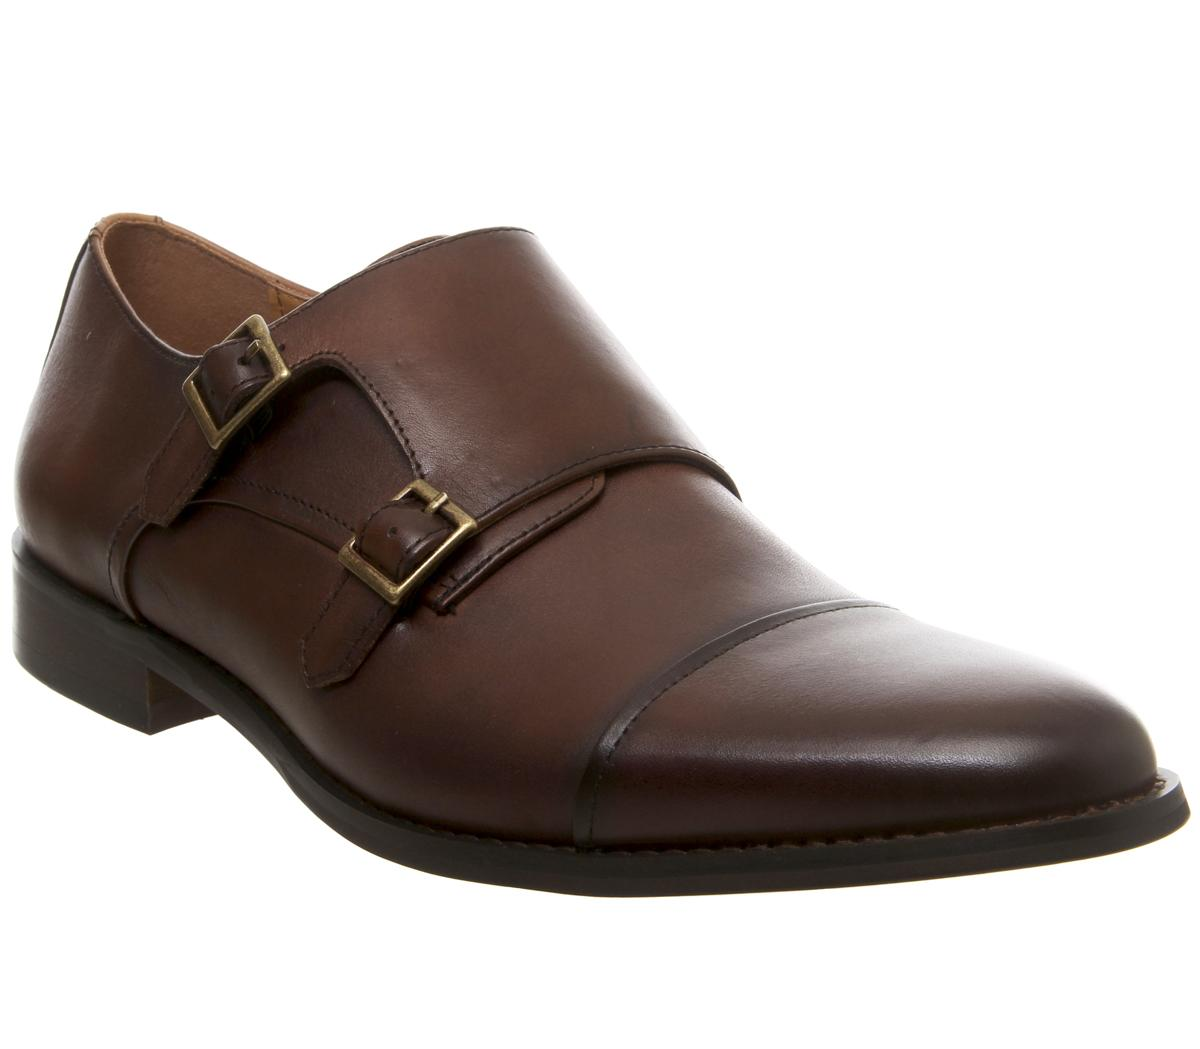 Import Monk Shoes